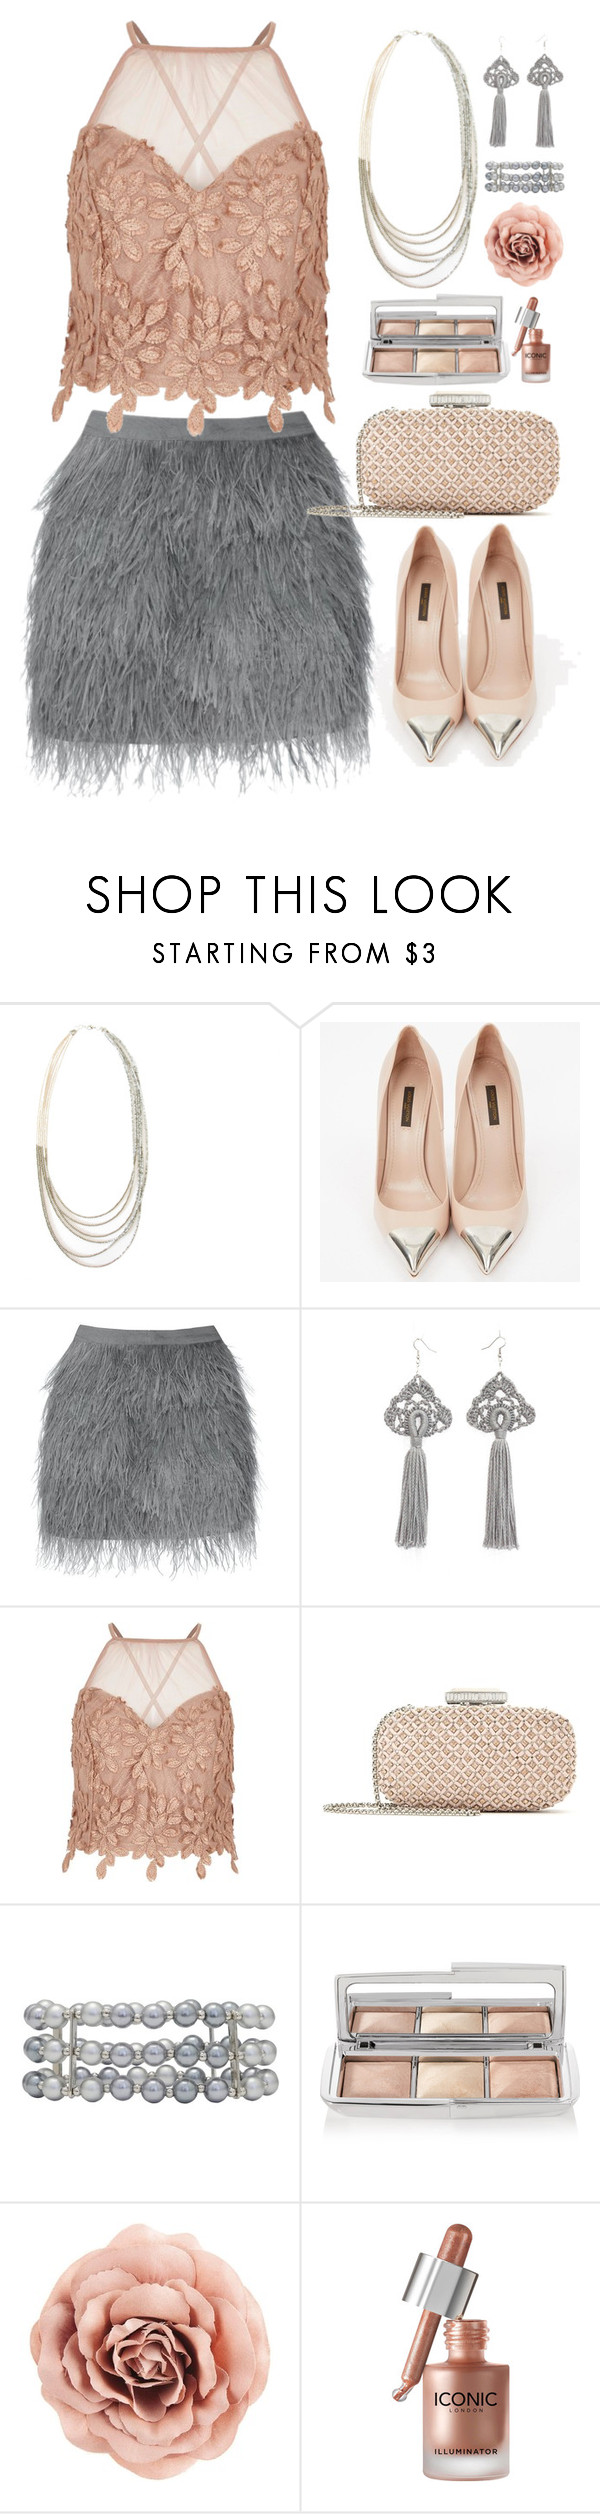 """""""Blush and Grey"""" by gicreazioni ❤ liked on Polyvore featuring Louis Vuitton, River Island, Oscar de la Renta, M&Co and Hourglass Cosmetics"""